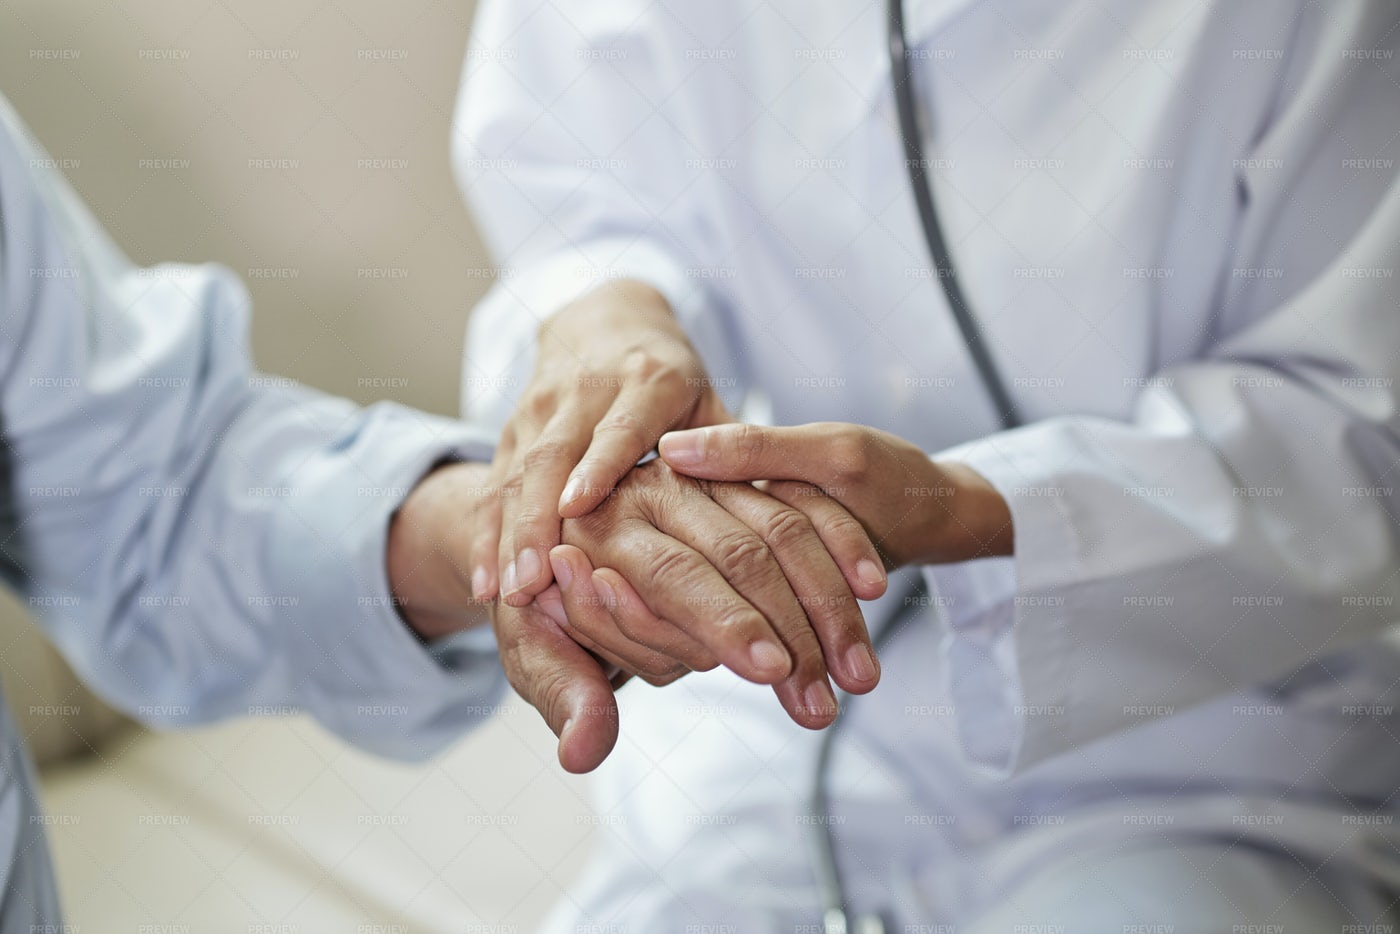 Doctor Taking Care Of Patient: Stock Photos